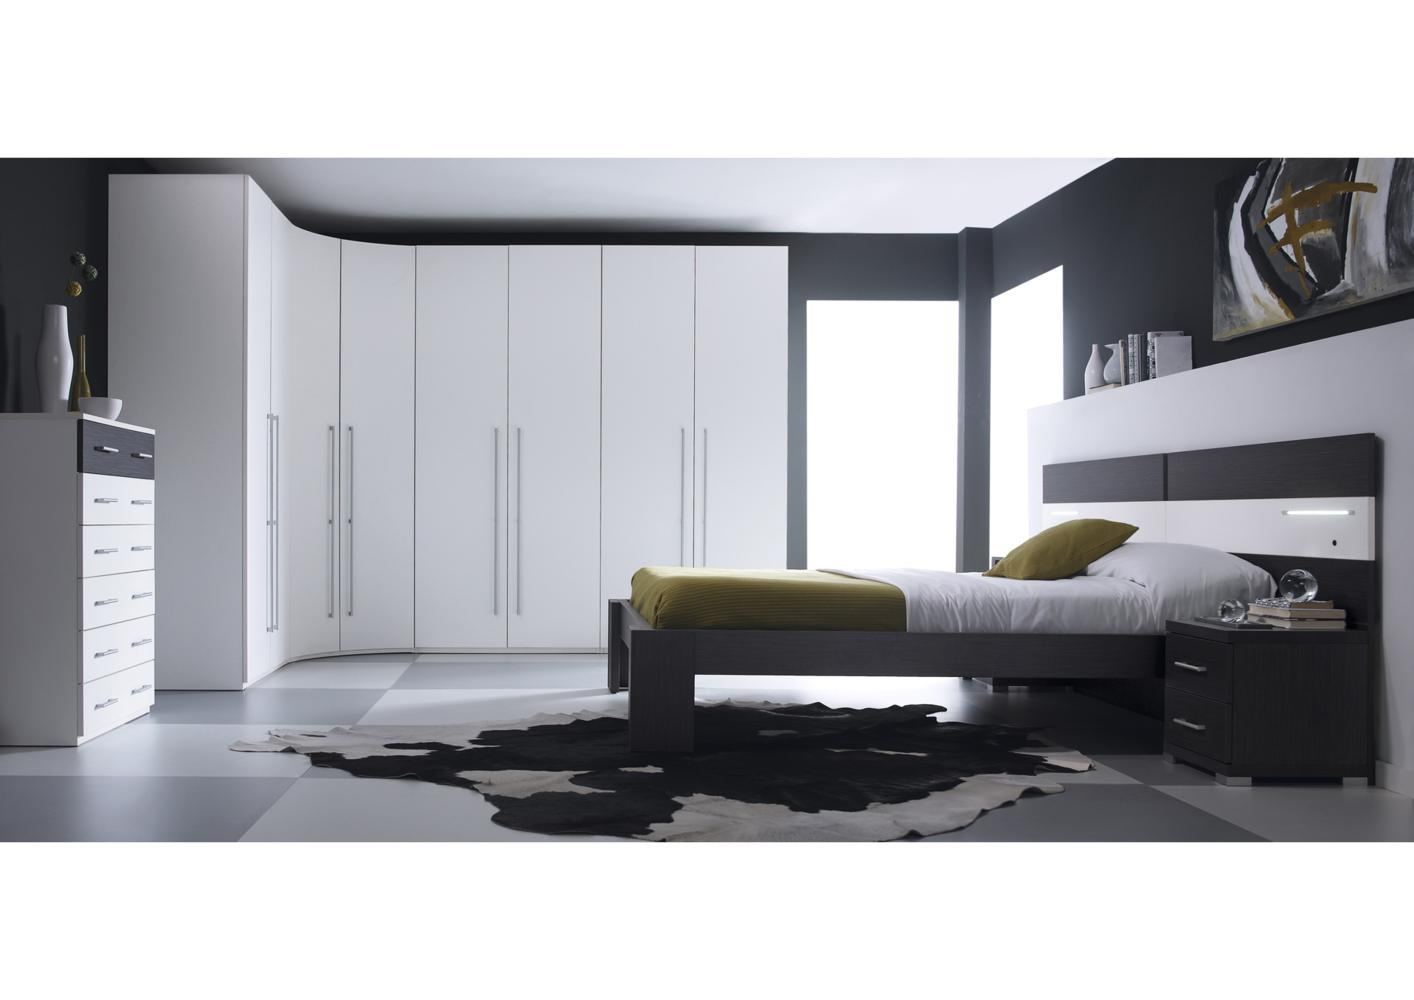 acheter votre armoire dressing contemporaine blanche chez. Black Bedroom Furniture Sets. Home Design Ideas